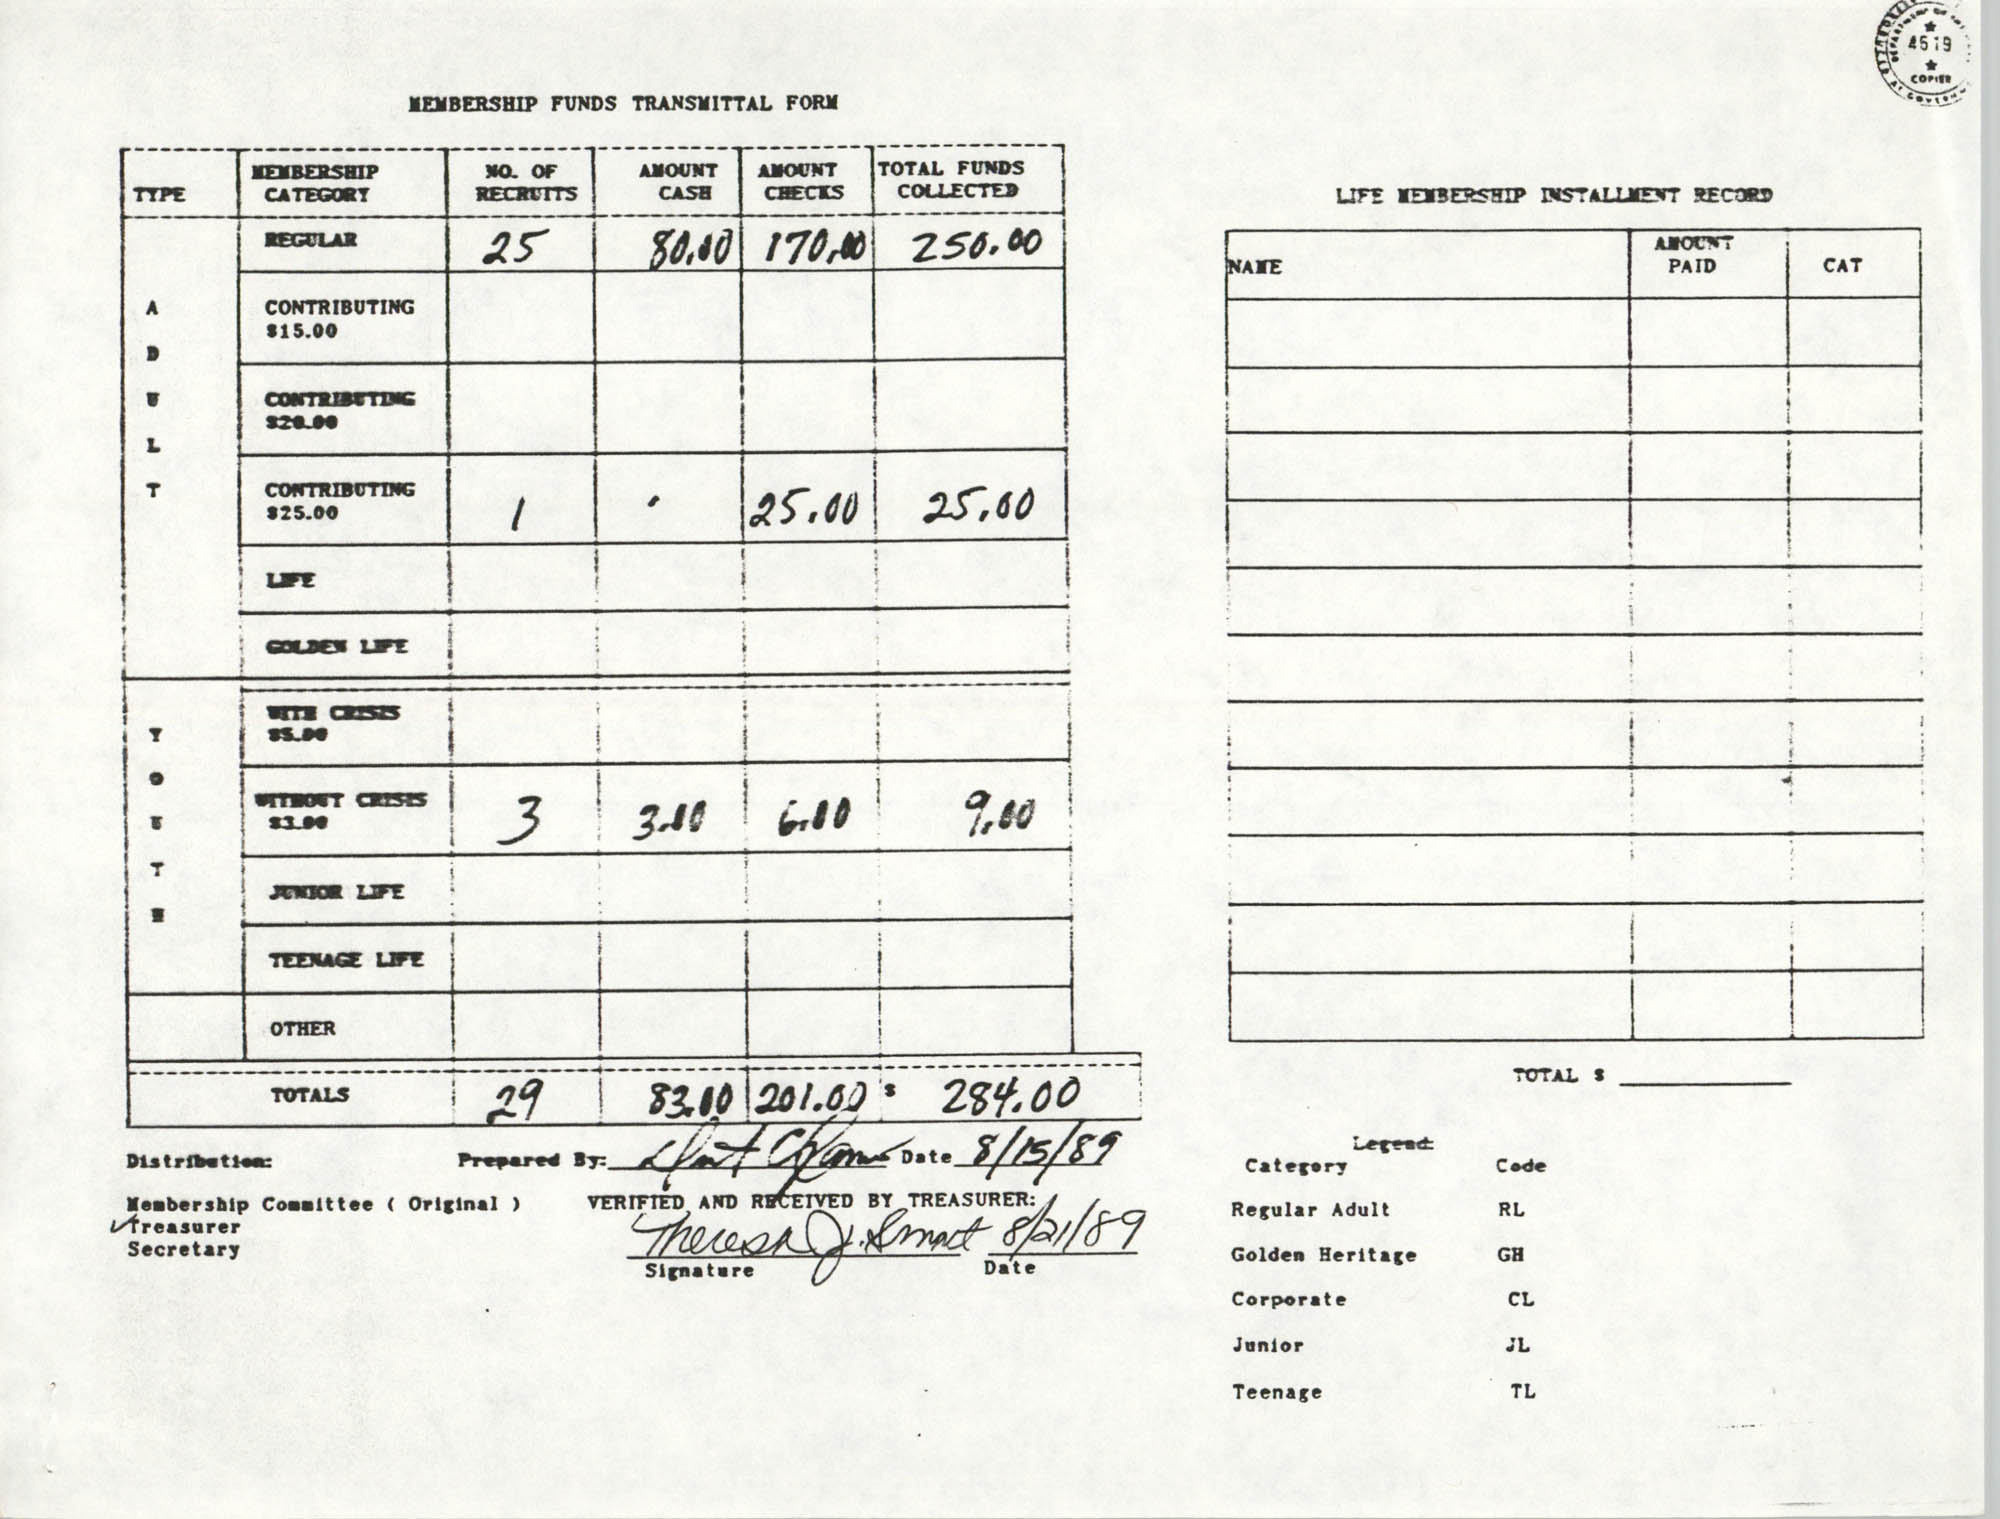 Charleston Branch of the NAACP Funds Transmittal Forms, August 1989, Page 2